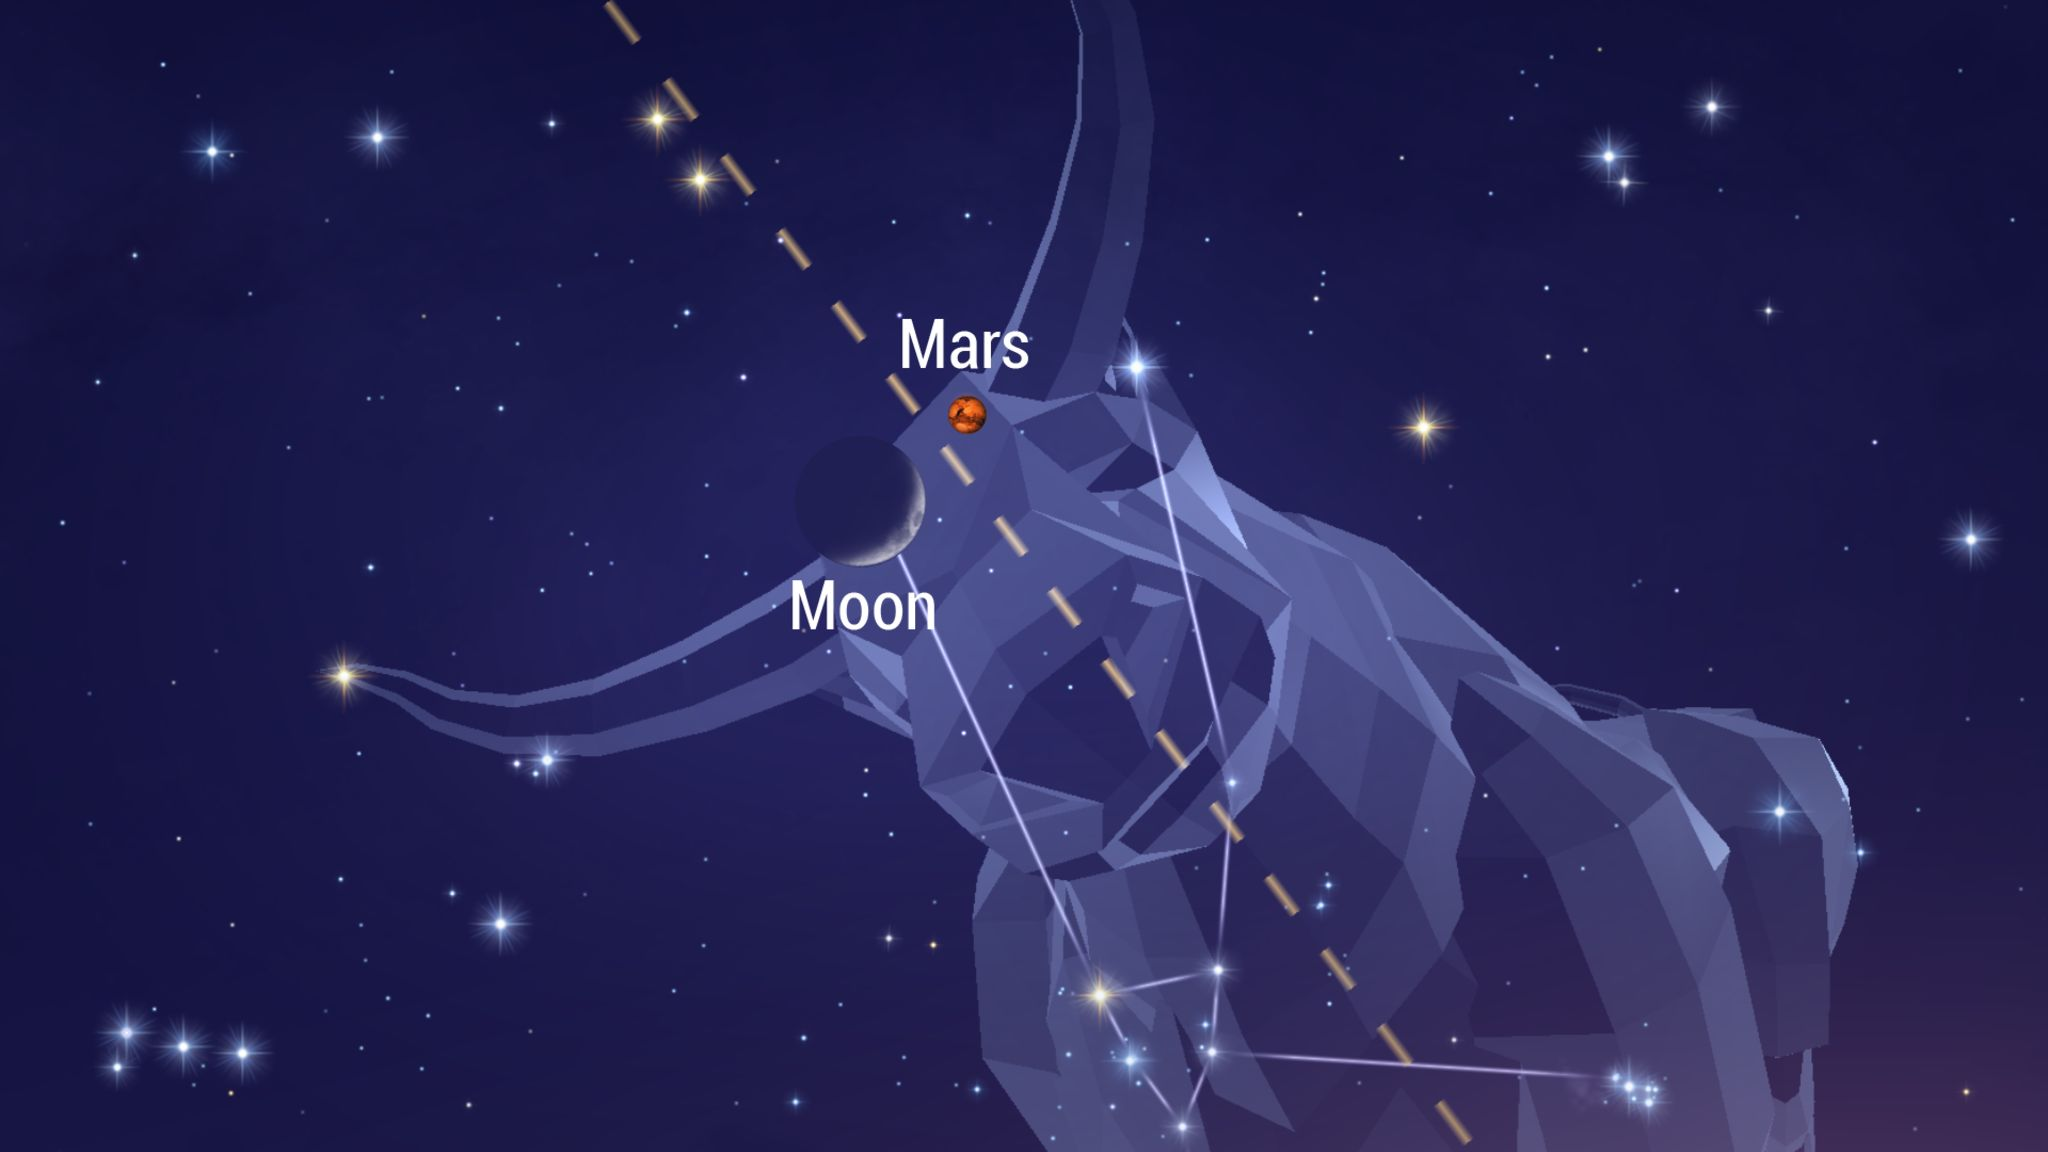 What's up in the sky from May 7 to 12?